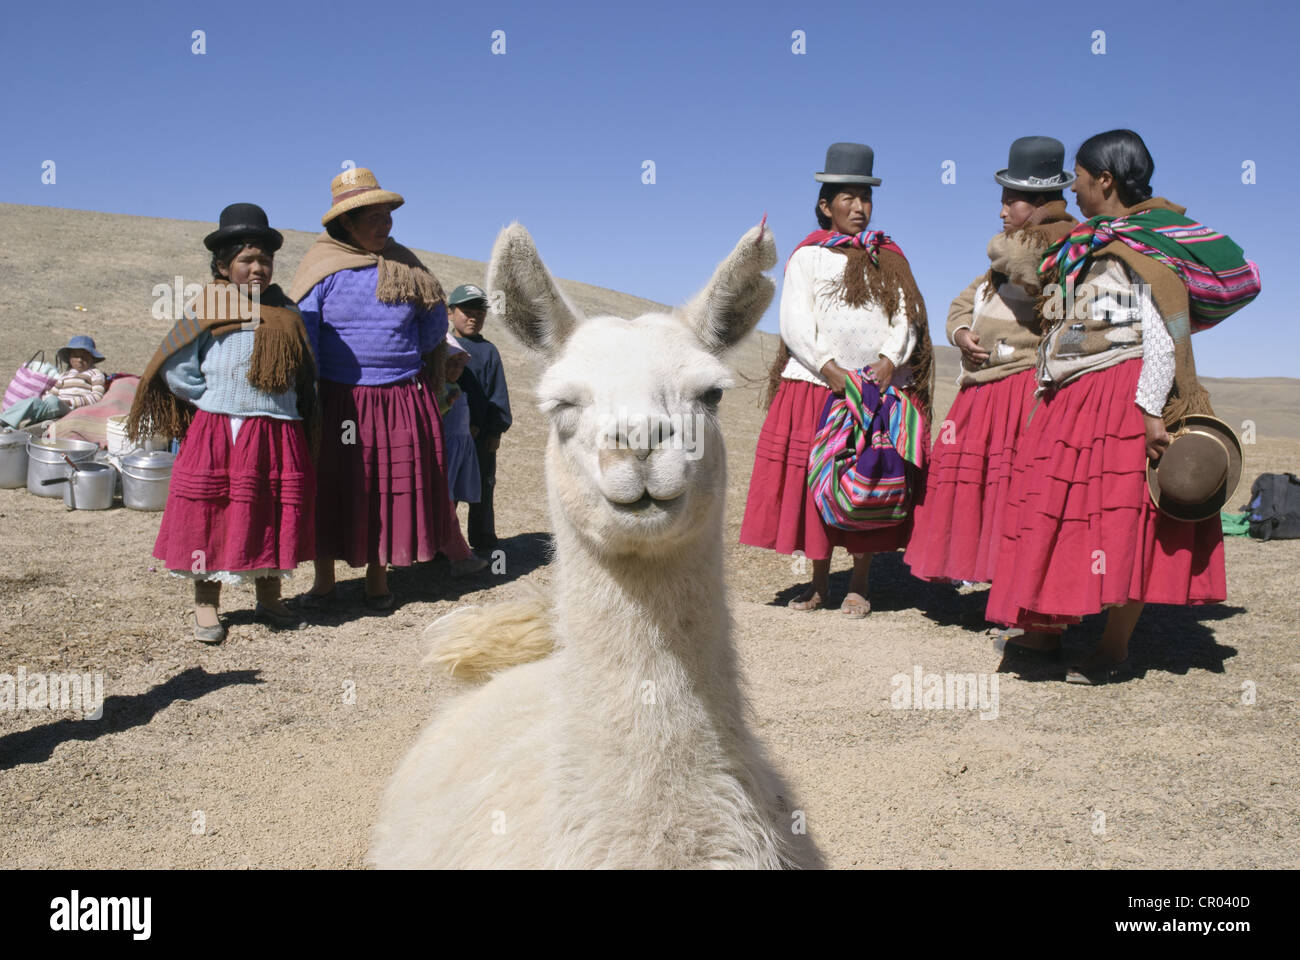 Llama sacrifice as an offering to the Pachamama - Stock Image